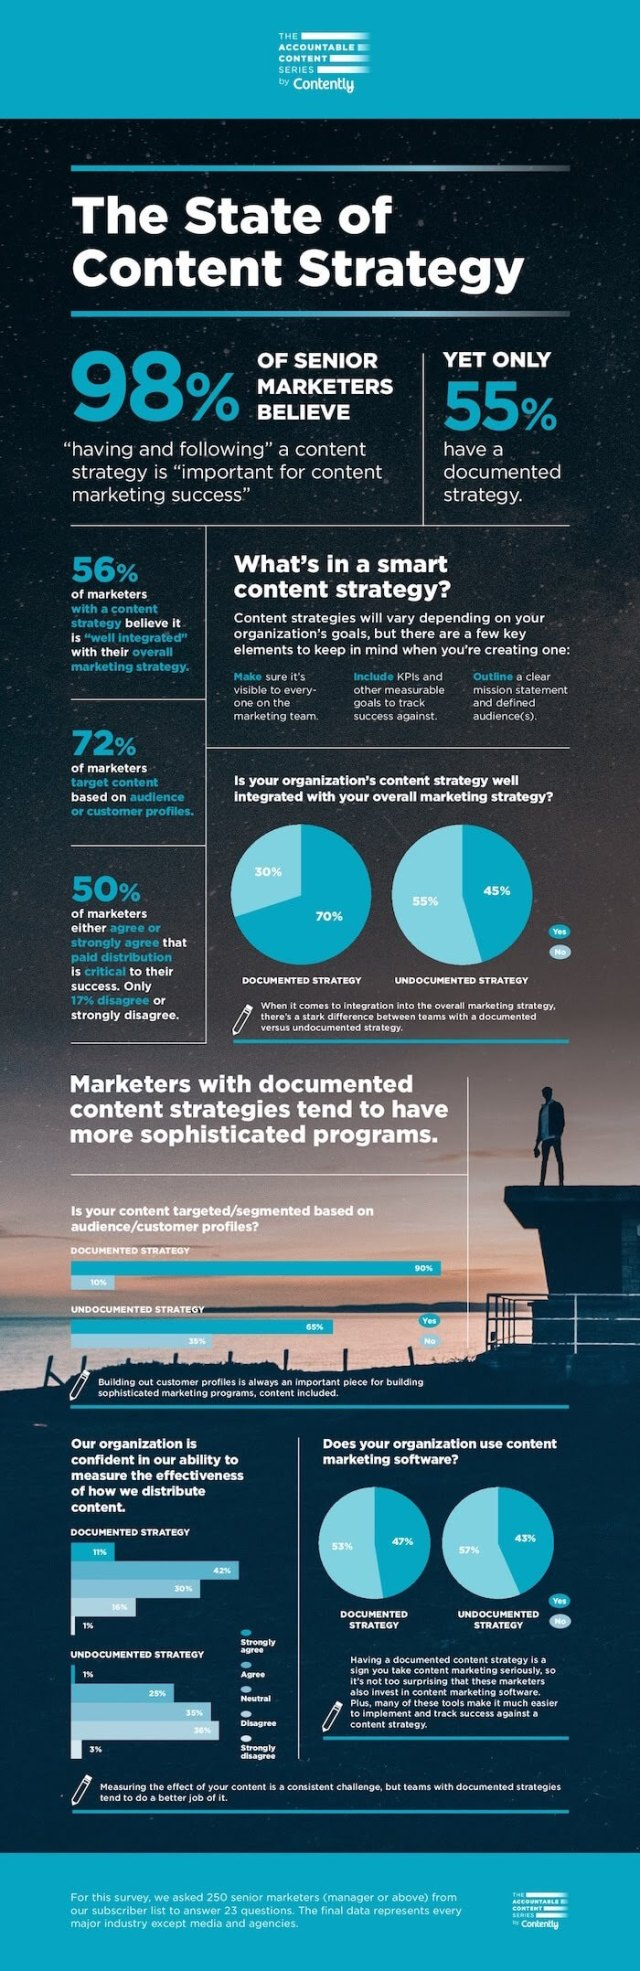 State of Smart Content Strategy Infographic compressed